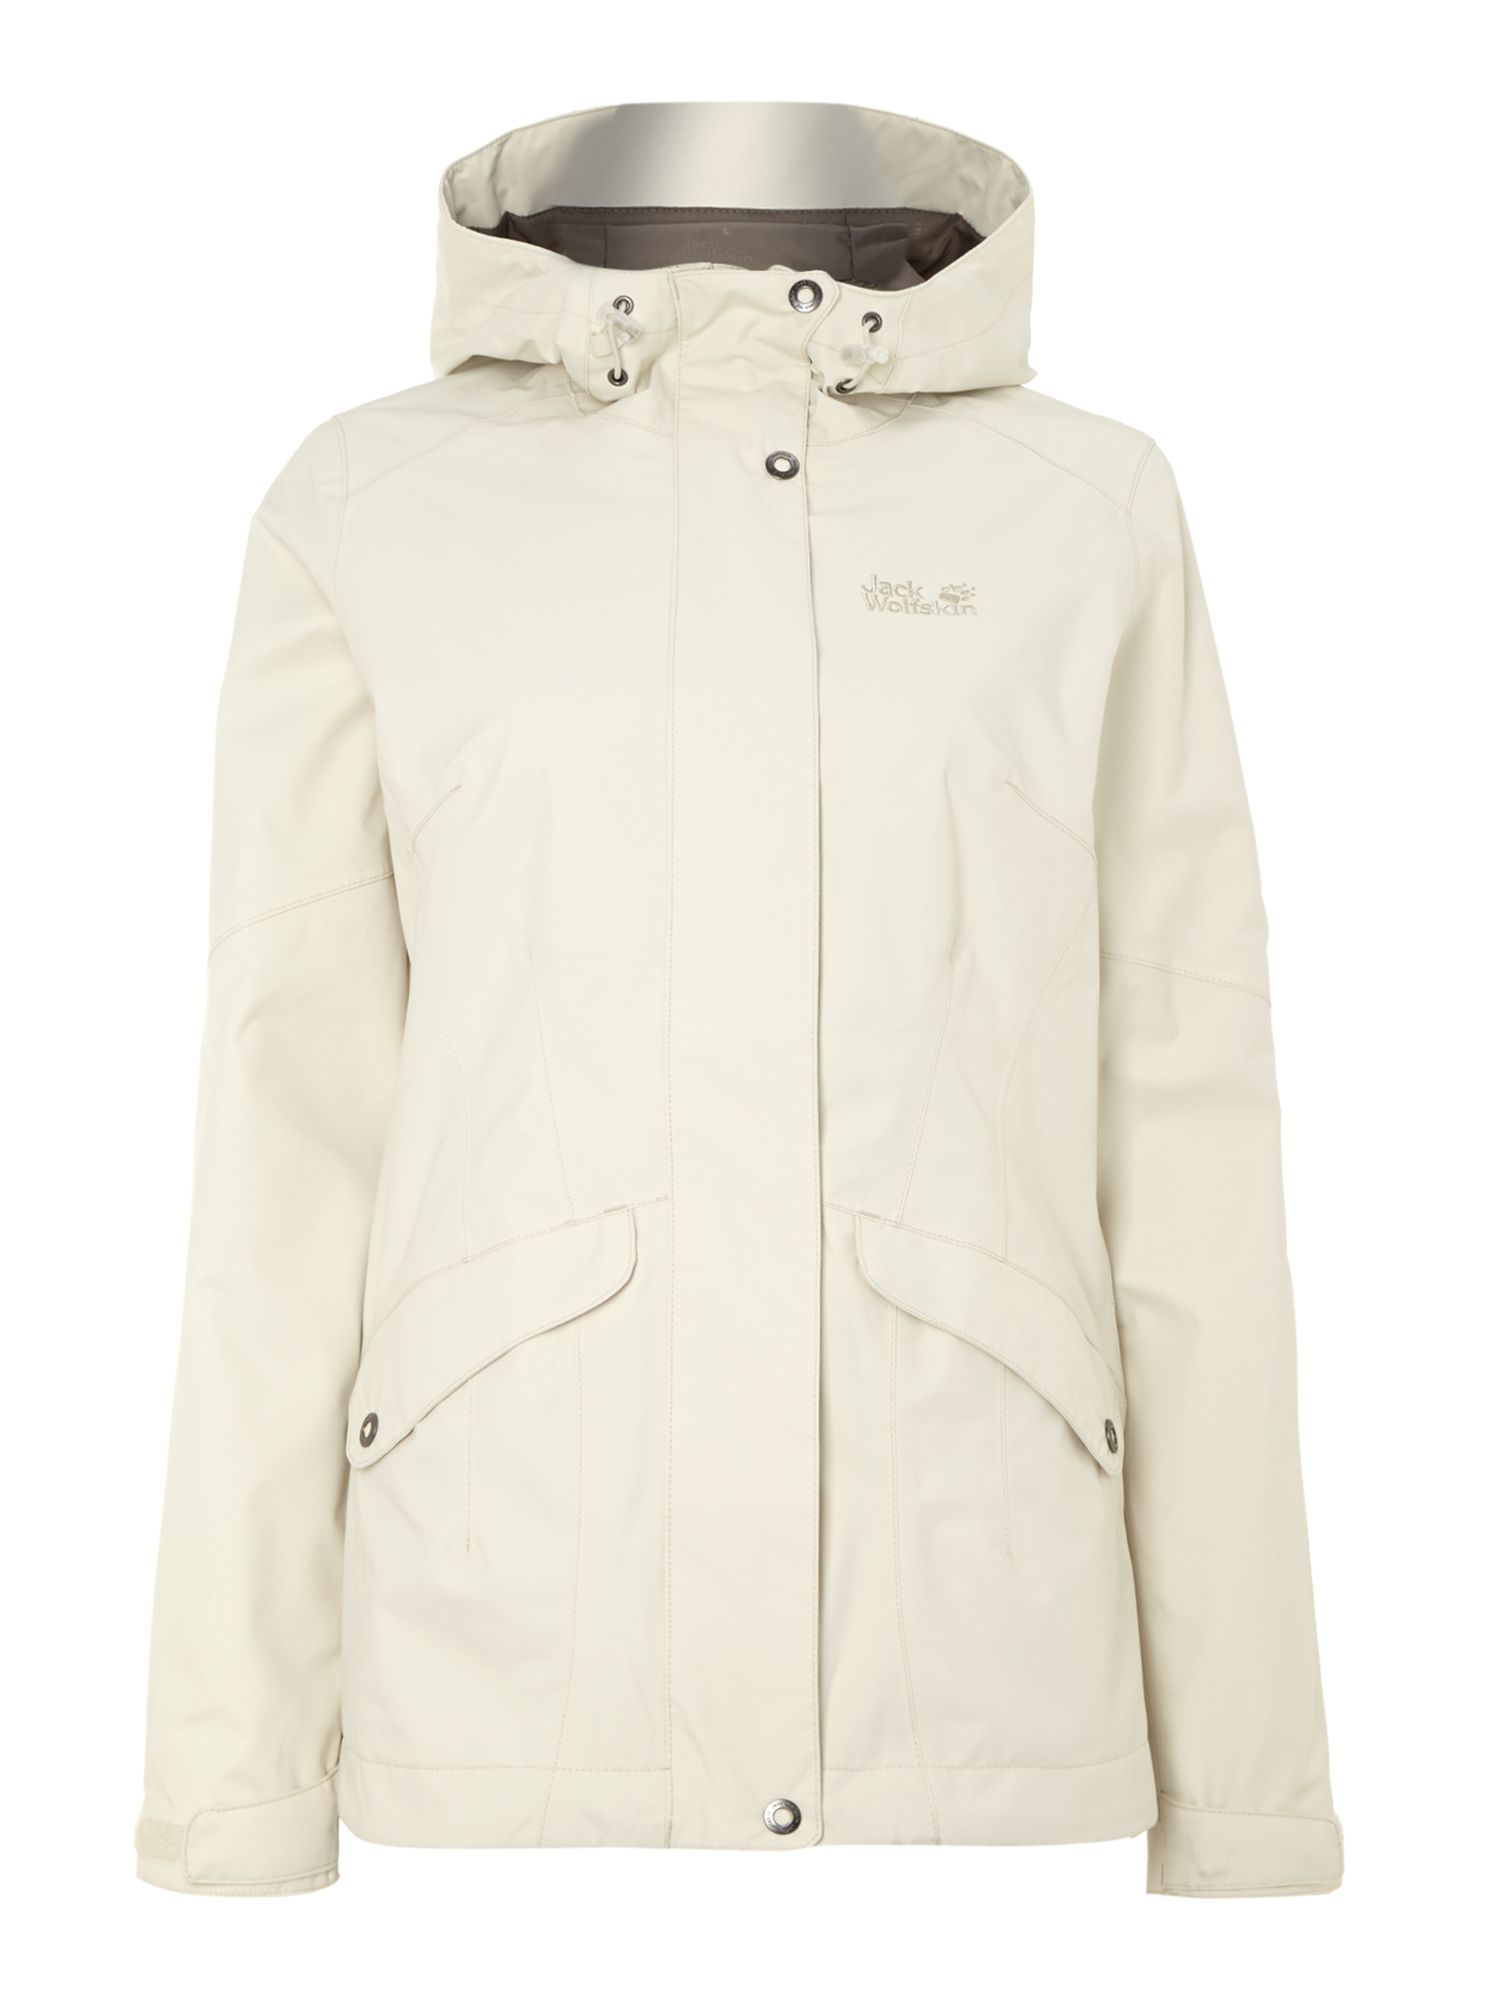 Connemara two pocket hooded jacket